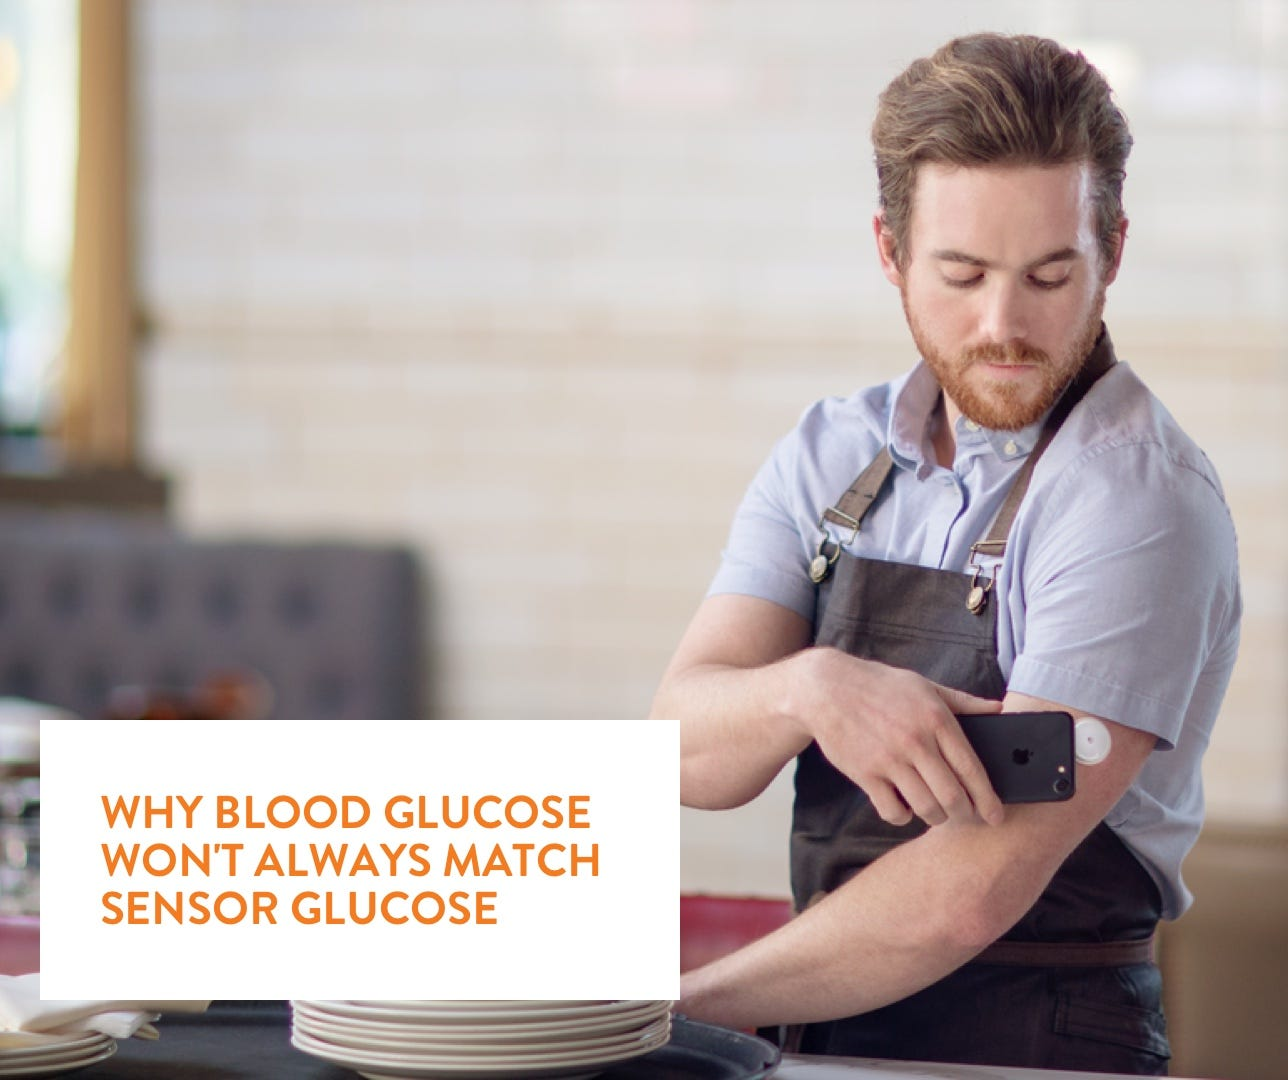 WHY BLOOD GLUCOSE WON'T ALWAYS MATCH SENSOR GLUCOSE